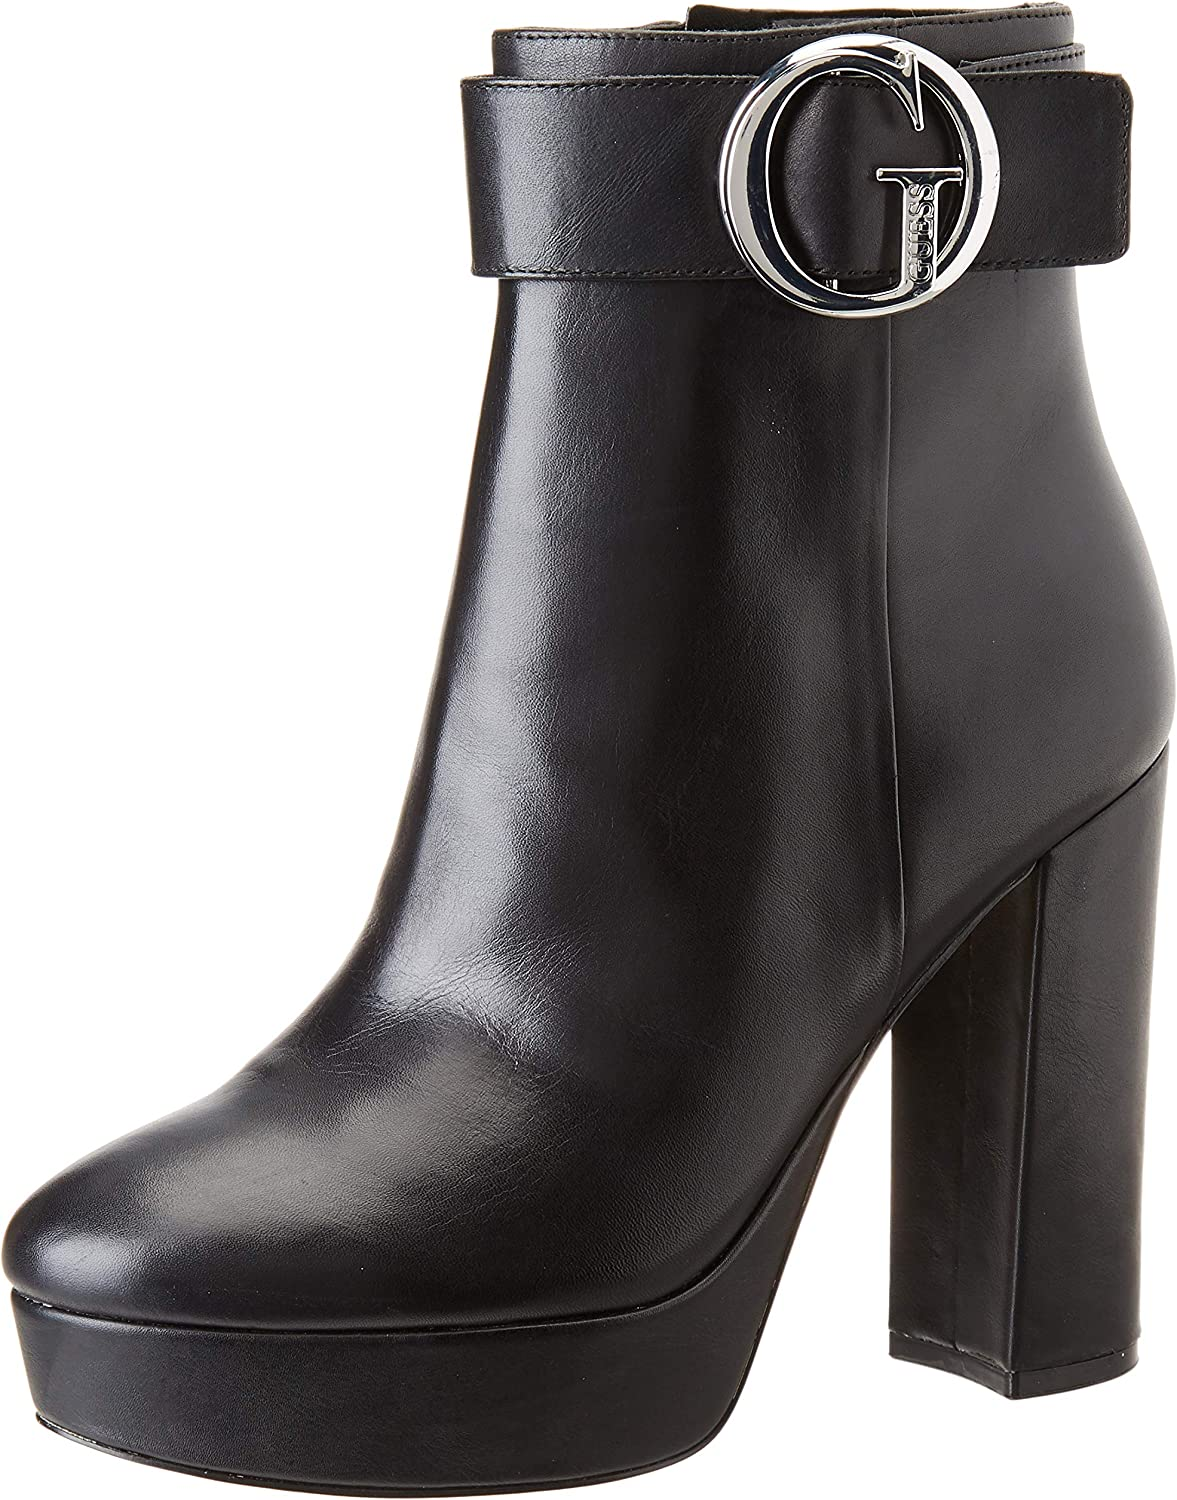 Guess Abrew/Stivaletto (Bootie)/Leat, Botines para Mujer